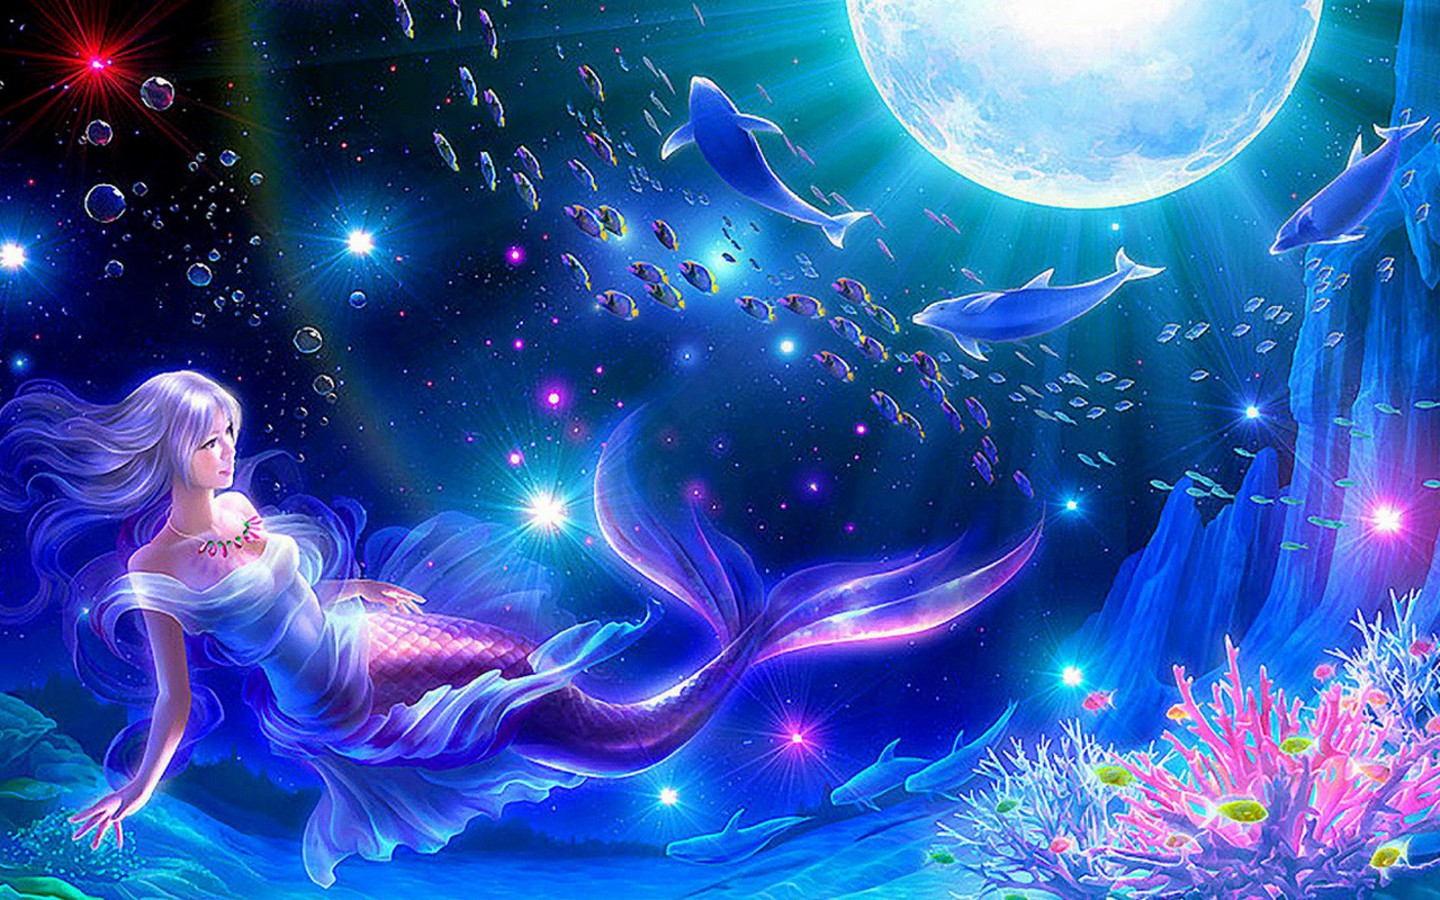 Beautiful fantasy girls hq free wallpapers download 1440x900